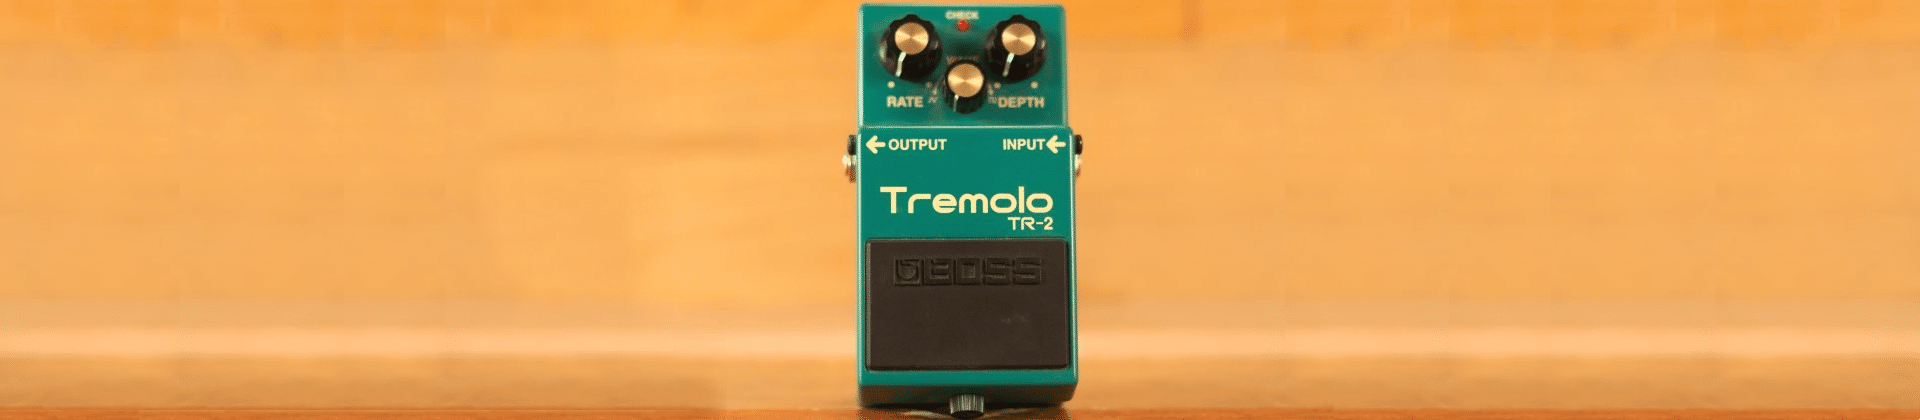 Best Tremolo Pedals Reviewed in Detail [Feb. 2020]